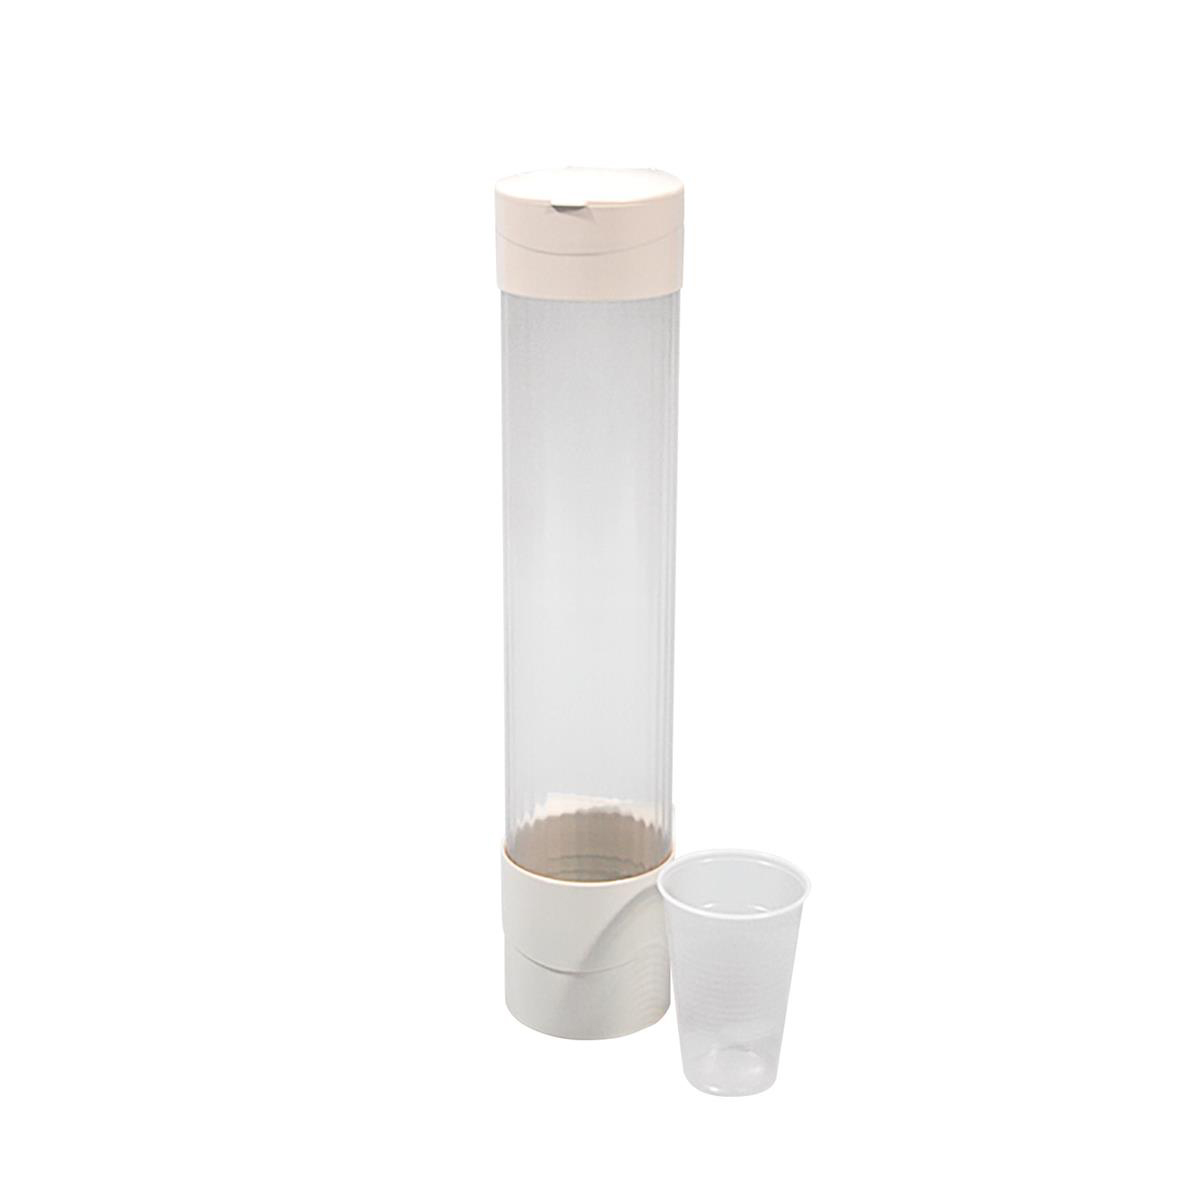 Cup dispenser Cup Dispenser for Water Cooler Holds 7oz Cups